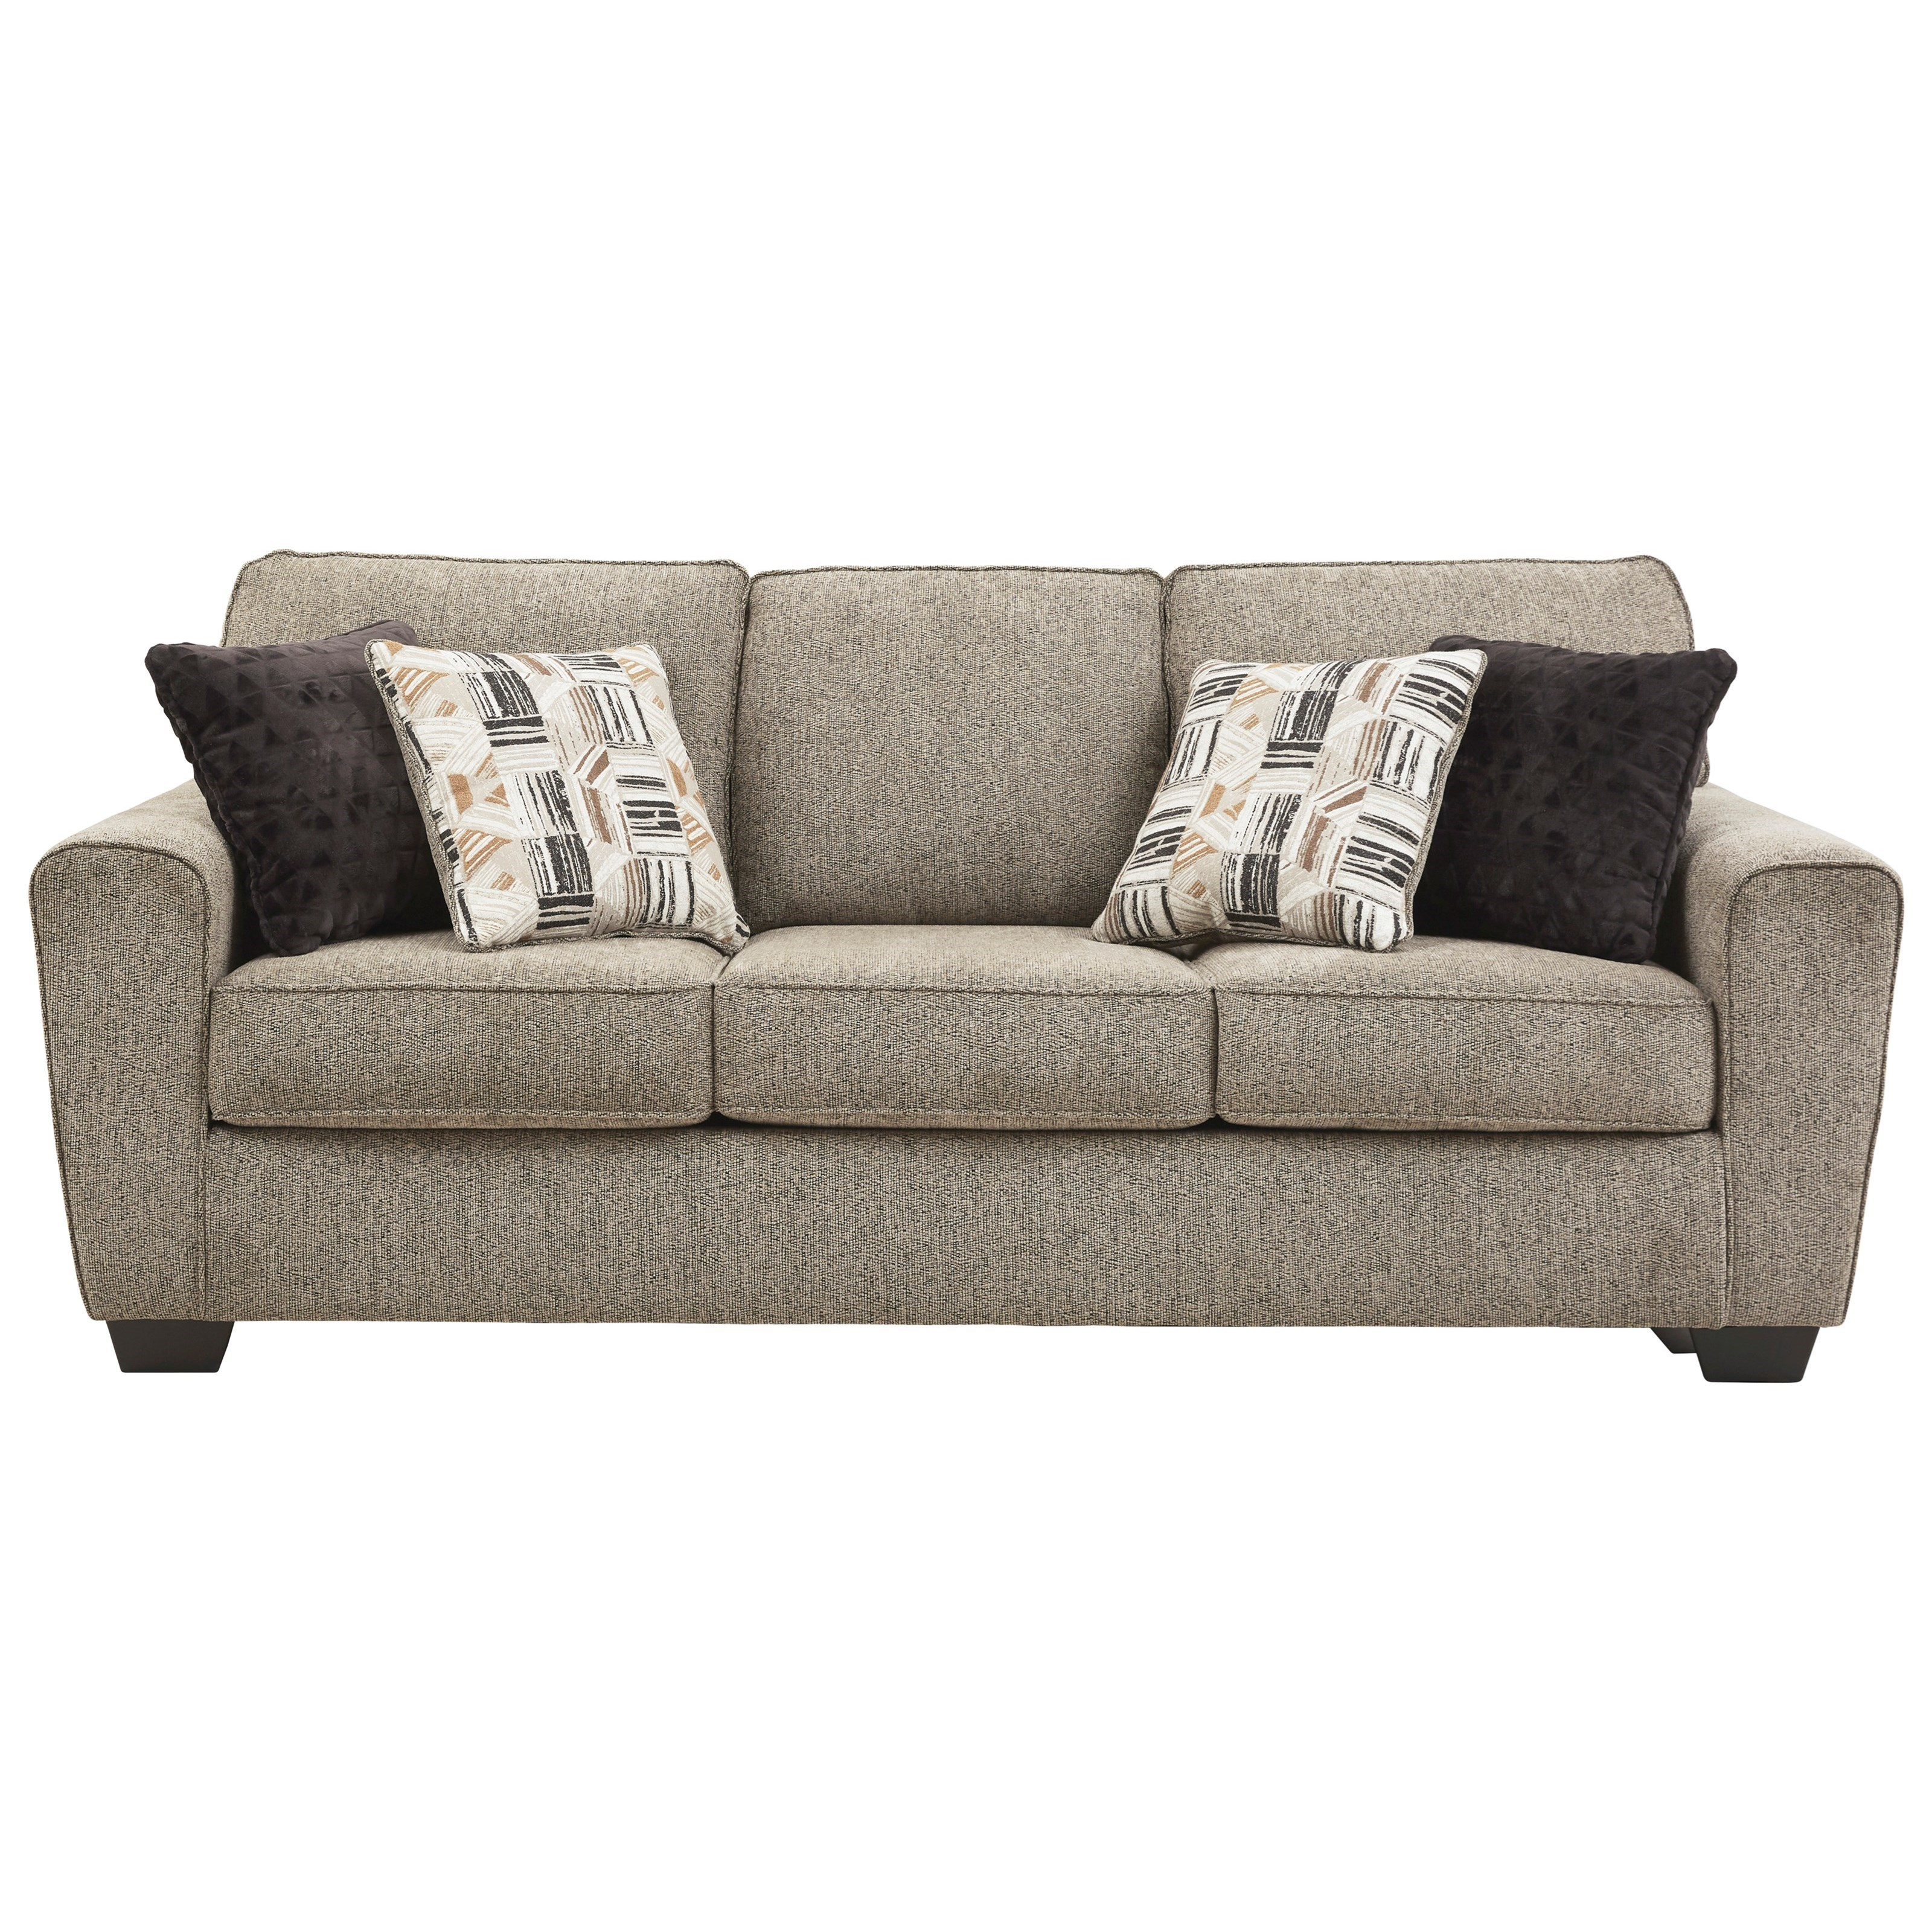 McCluer Sofa by Benchcraft at Catalog Outlet